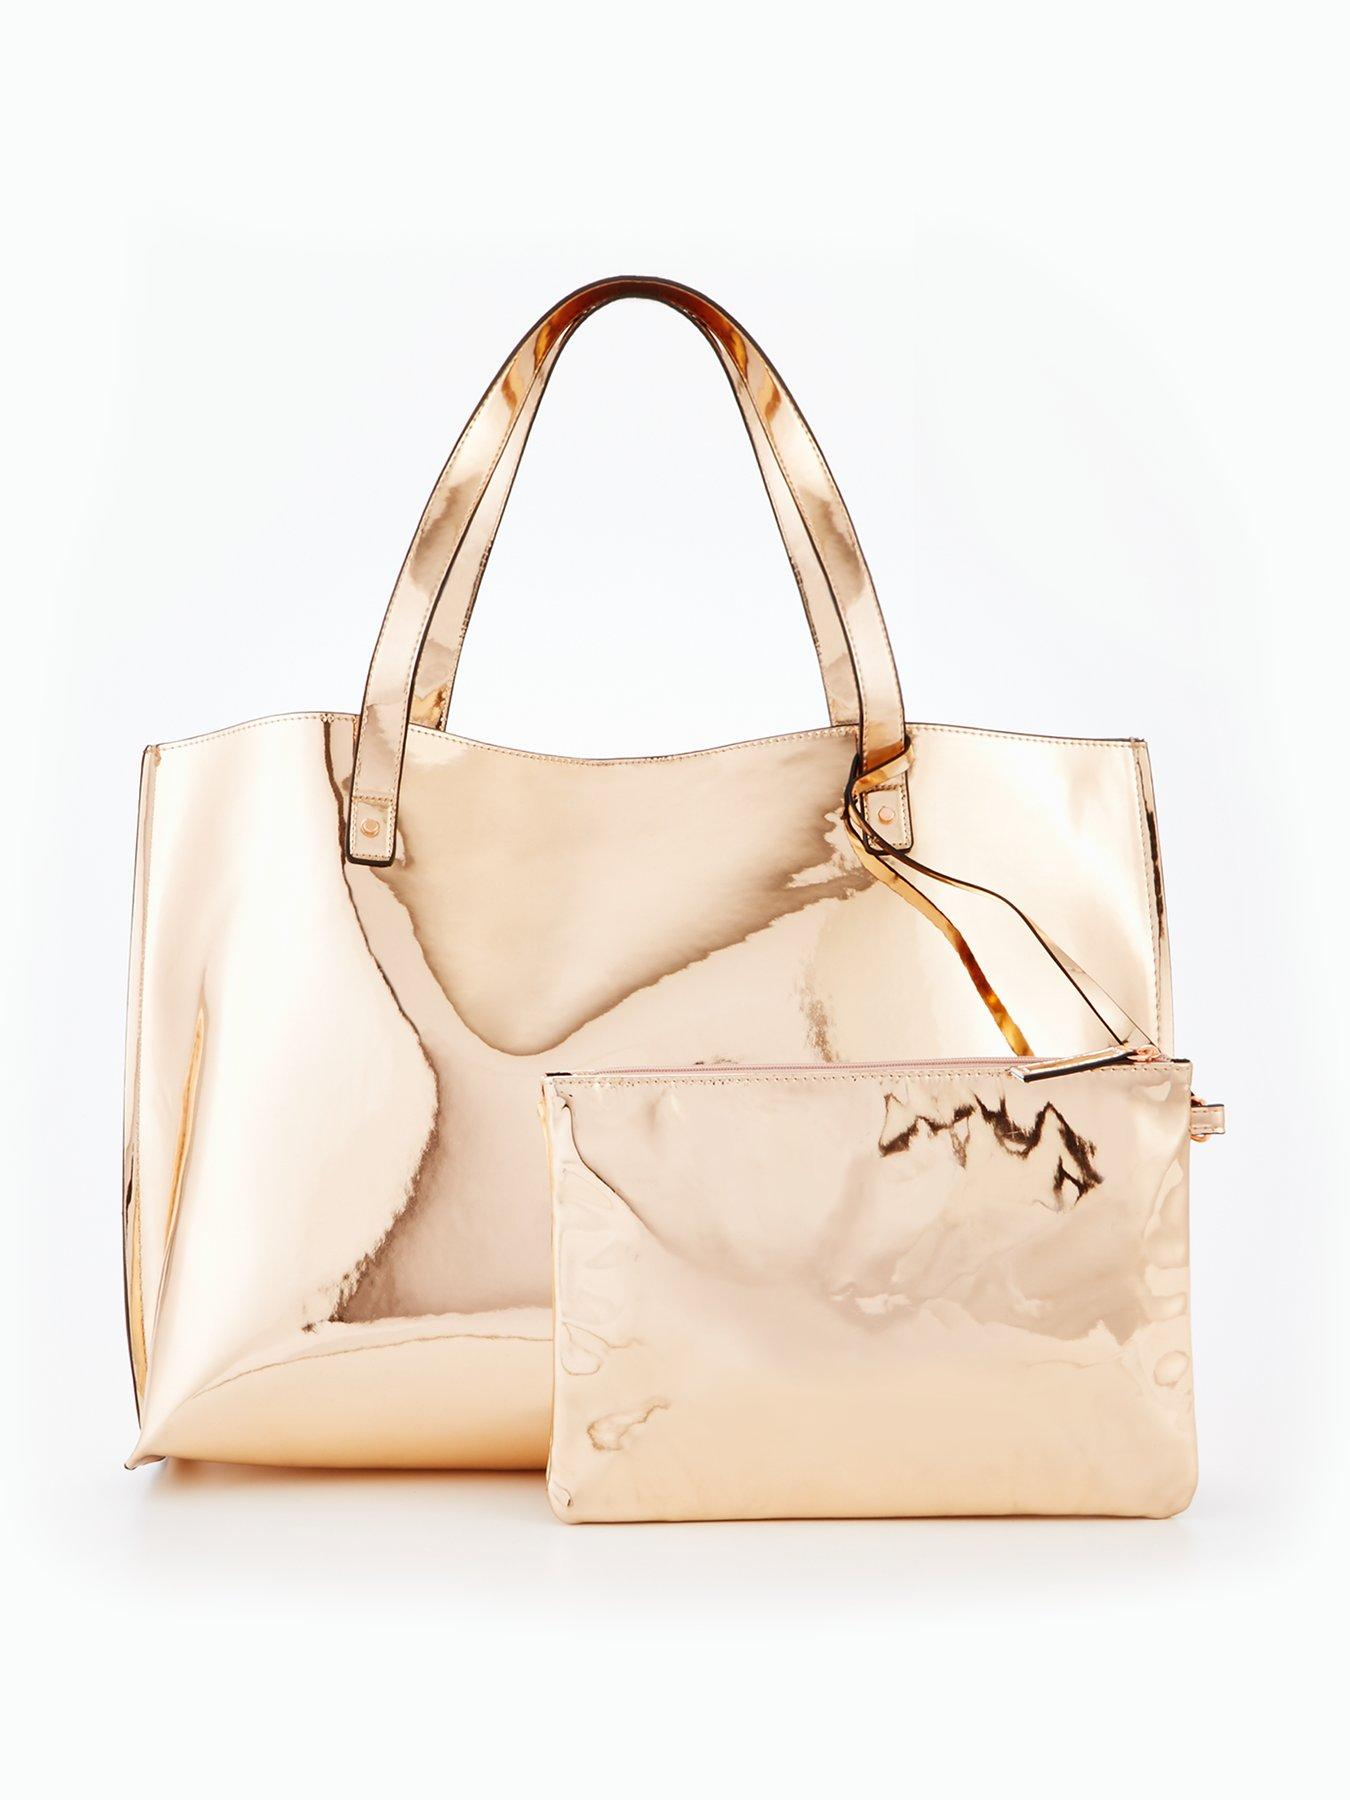 Metallic Beach Bag, €38 Shop here